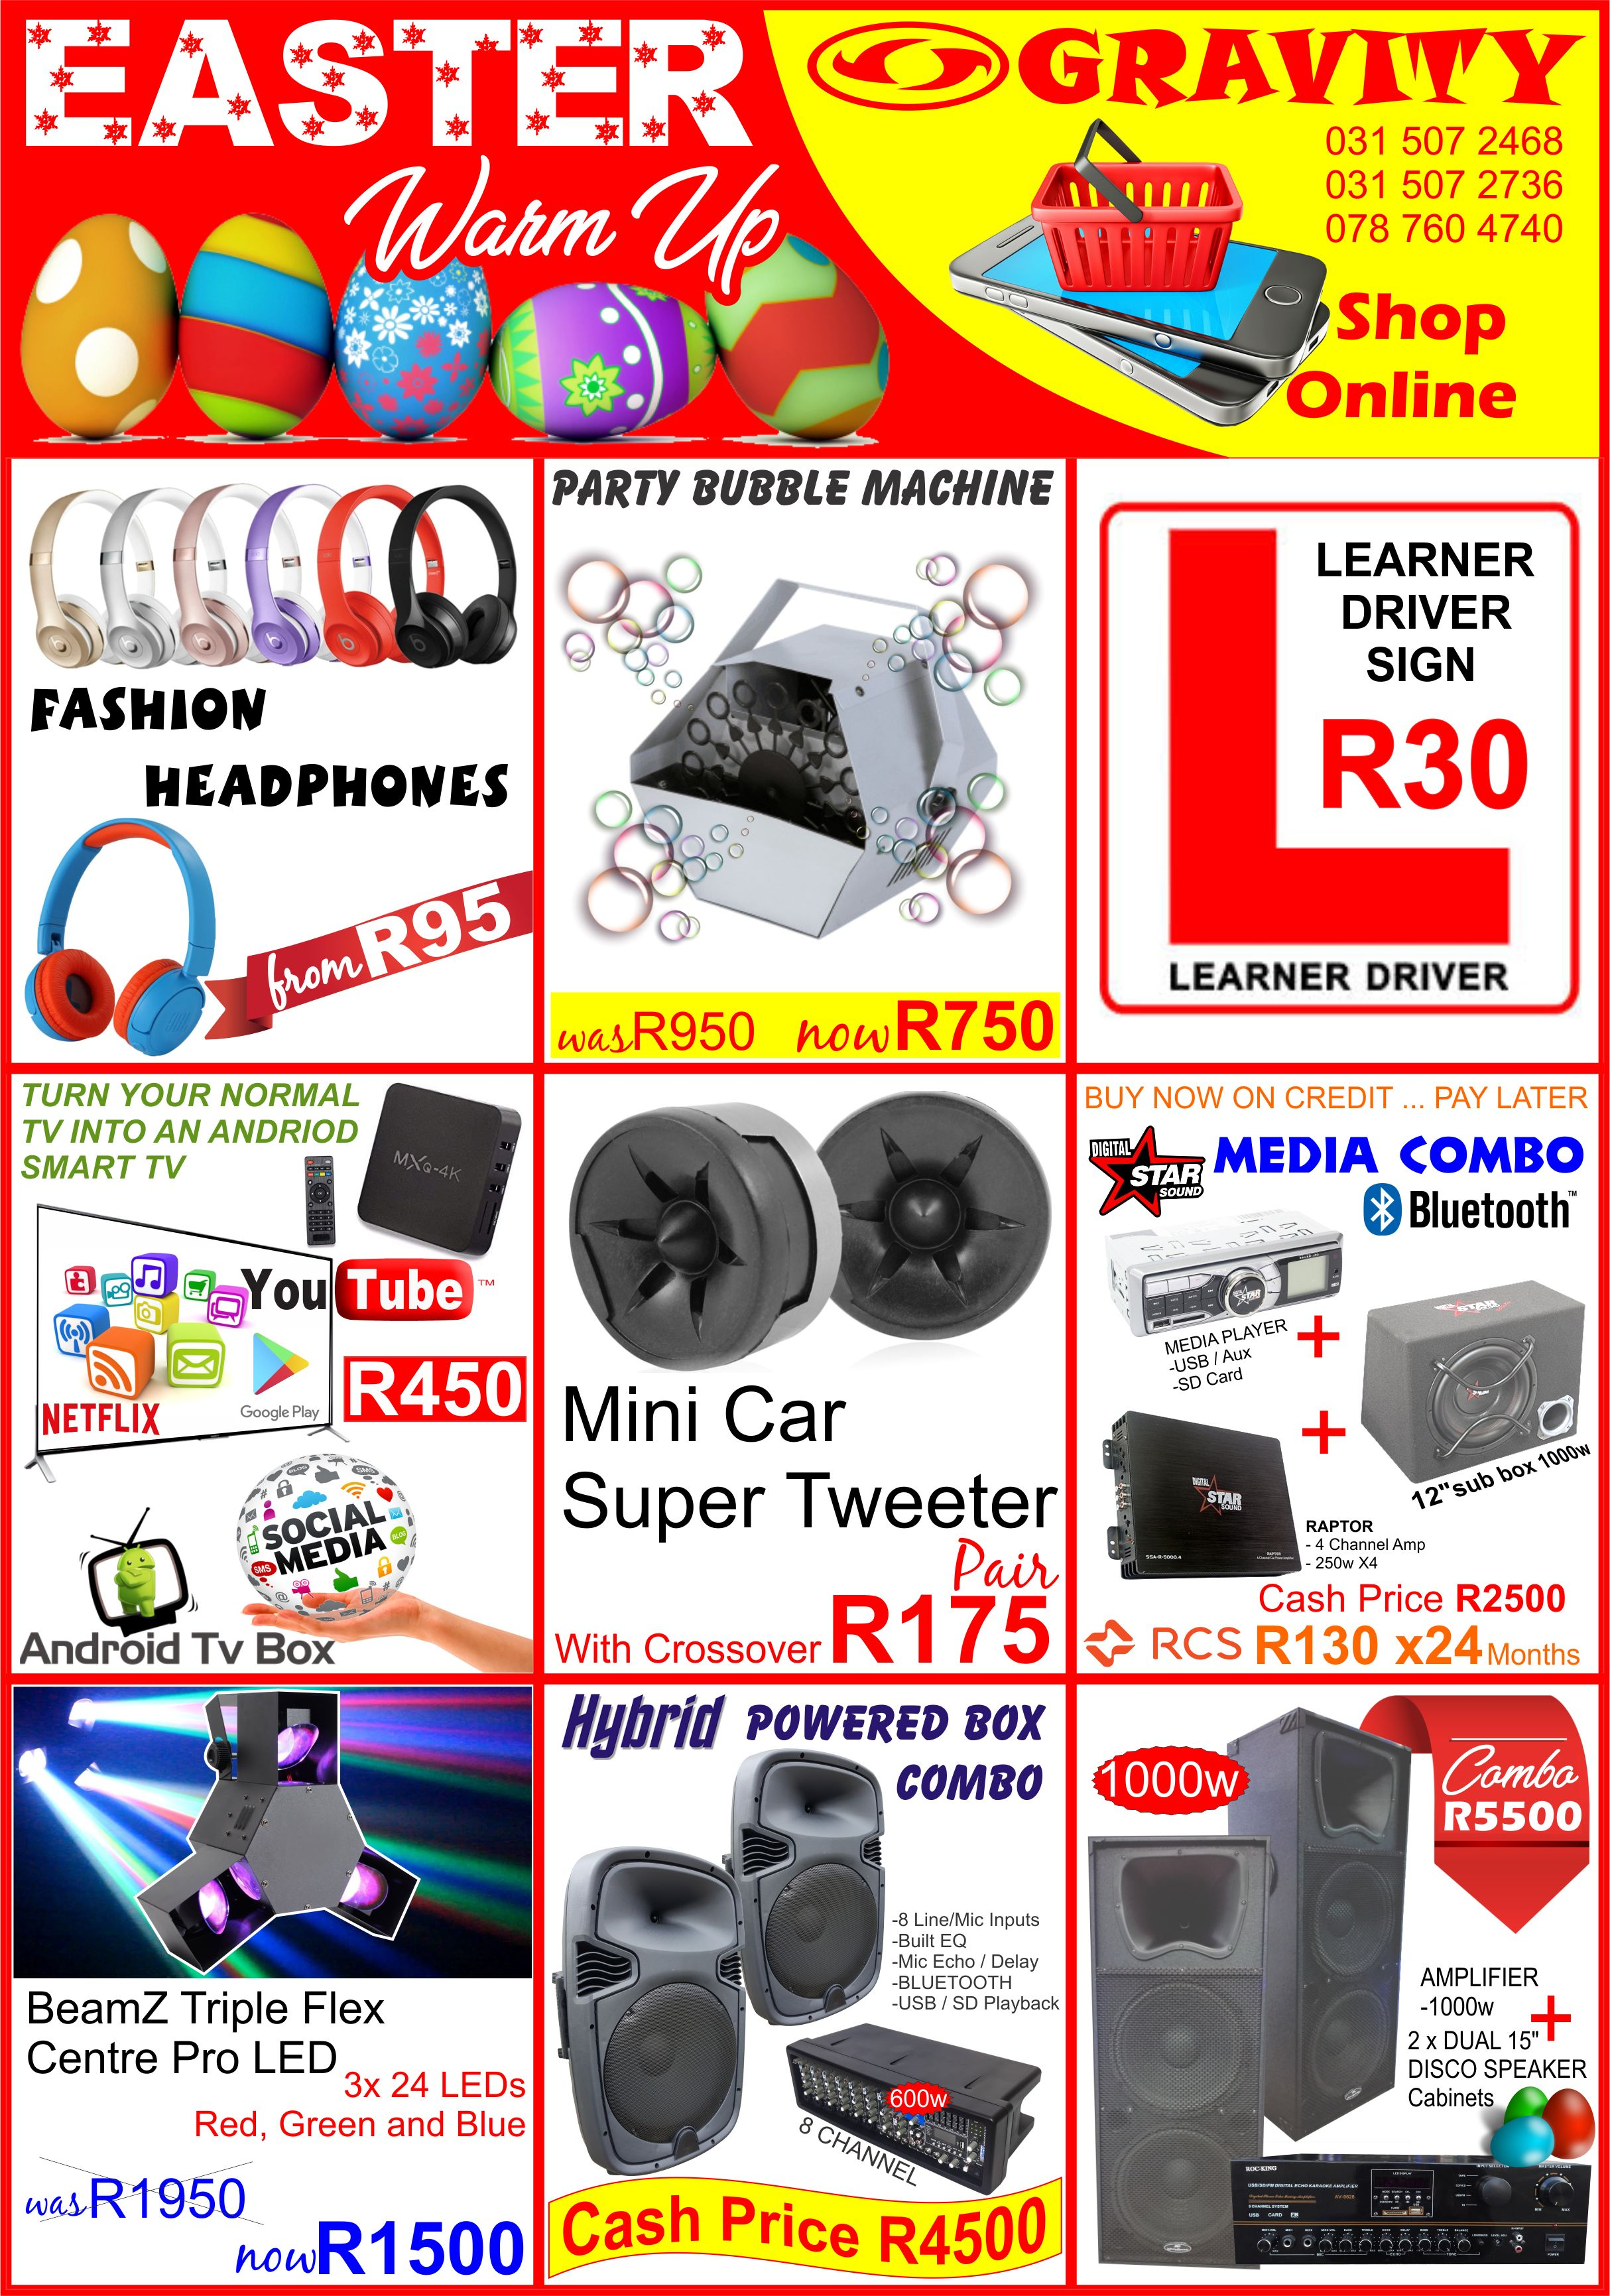 car audio disco dj home sound sony pioneer starsound peavey hybrid gravity sound and lighting warehouse 0315072463 gravity dj store durban phoenix for the cheapest deal in all dj sound audio equipment in durban kwazulu natal dj store disco equipment dj equipment sound light equipment cheapest deal in disco equipment in durban cheapest deal in sound light dj equipment in durban south africa gravity djs store gravity dj store gravity sound & lighting warehouse Audio Warehouse is not just a website but a division of one of South Africa largest importers and distributor of professional sound and lighting products ensuring after sales support for your piece of mind Free delivery on all orders over CD players  MP3 players DJ Mixers light effects special effects sound light LED LED effects smoke machines dj gear dj equipment light stand turntable ANTARI  Smoke Machines Audio Technica Audix Microphones snow fluid smoke fluid Beier  ProAudio BET Acoustics Beyma BRITEQ DMX Creator Software ECLER Eminence, JB Systems  Flight Cases JB Systems  Lighting JB Systems SouND Lamps LitePuter Neumann Microphones Neutrik Connectors Pioneer DJ Sennheiser SYNQ Audio Research SYSTEM PACKAGE SPECIAL Vestax party lights disco lights outdoor lighting DMX Software Durban South Africa dj store dj gear durban cheap dj equipment dj equipment for sale dj store durban online dj store mixers headphones turntables dj controllers midi controllers cdj lighting Disco lighting Durban Gravity Sound & Lighting Warehouse sales & hire Chauvet skytec citronic lazer lights led lights smoke machine snow machine bubble machine foam machine double derby triple derby water light flame light lazer starburst lights strobes mega strobe light dual lazer red and green 4way lazer line dancer disco ball mirror ball pin spot mirror ball motor bubble fluid smoke fluid switch panel dmx controlls switch packs mushroom lights polaris led helious led fx led lights oceana light  j5 led chauvet light atlantis led lights skytec d